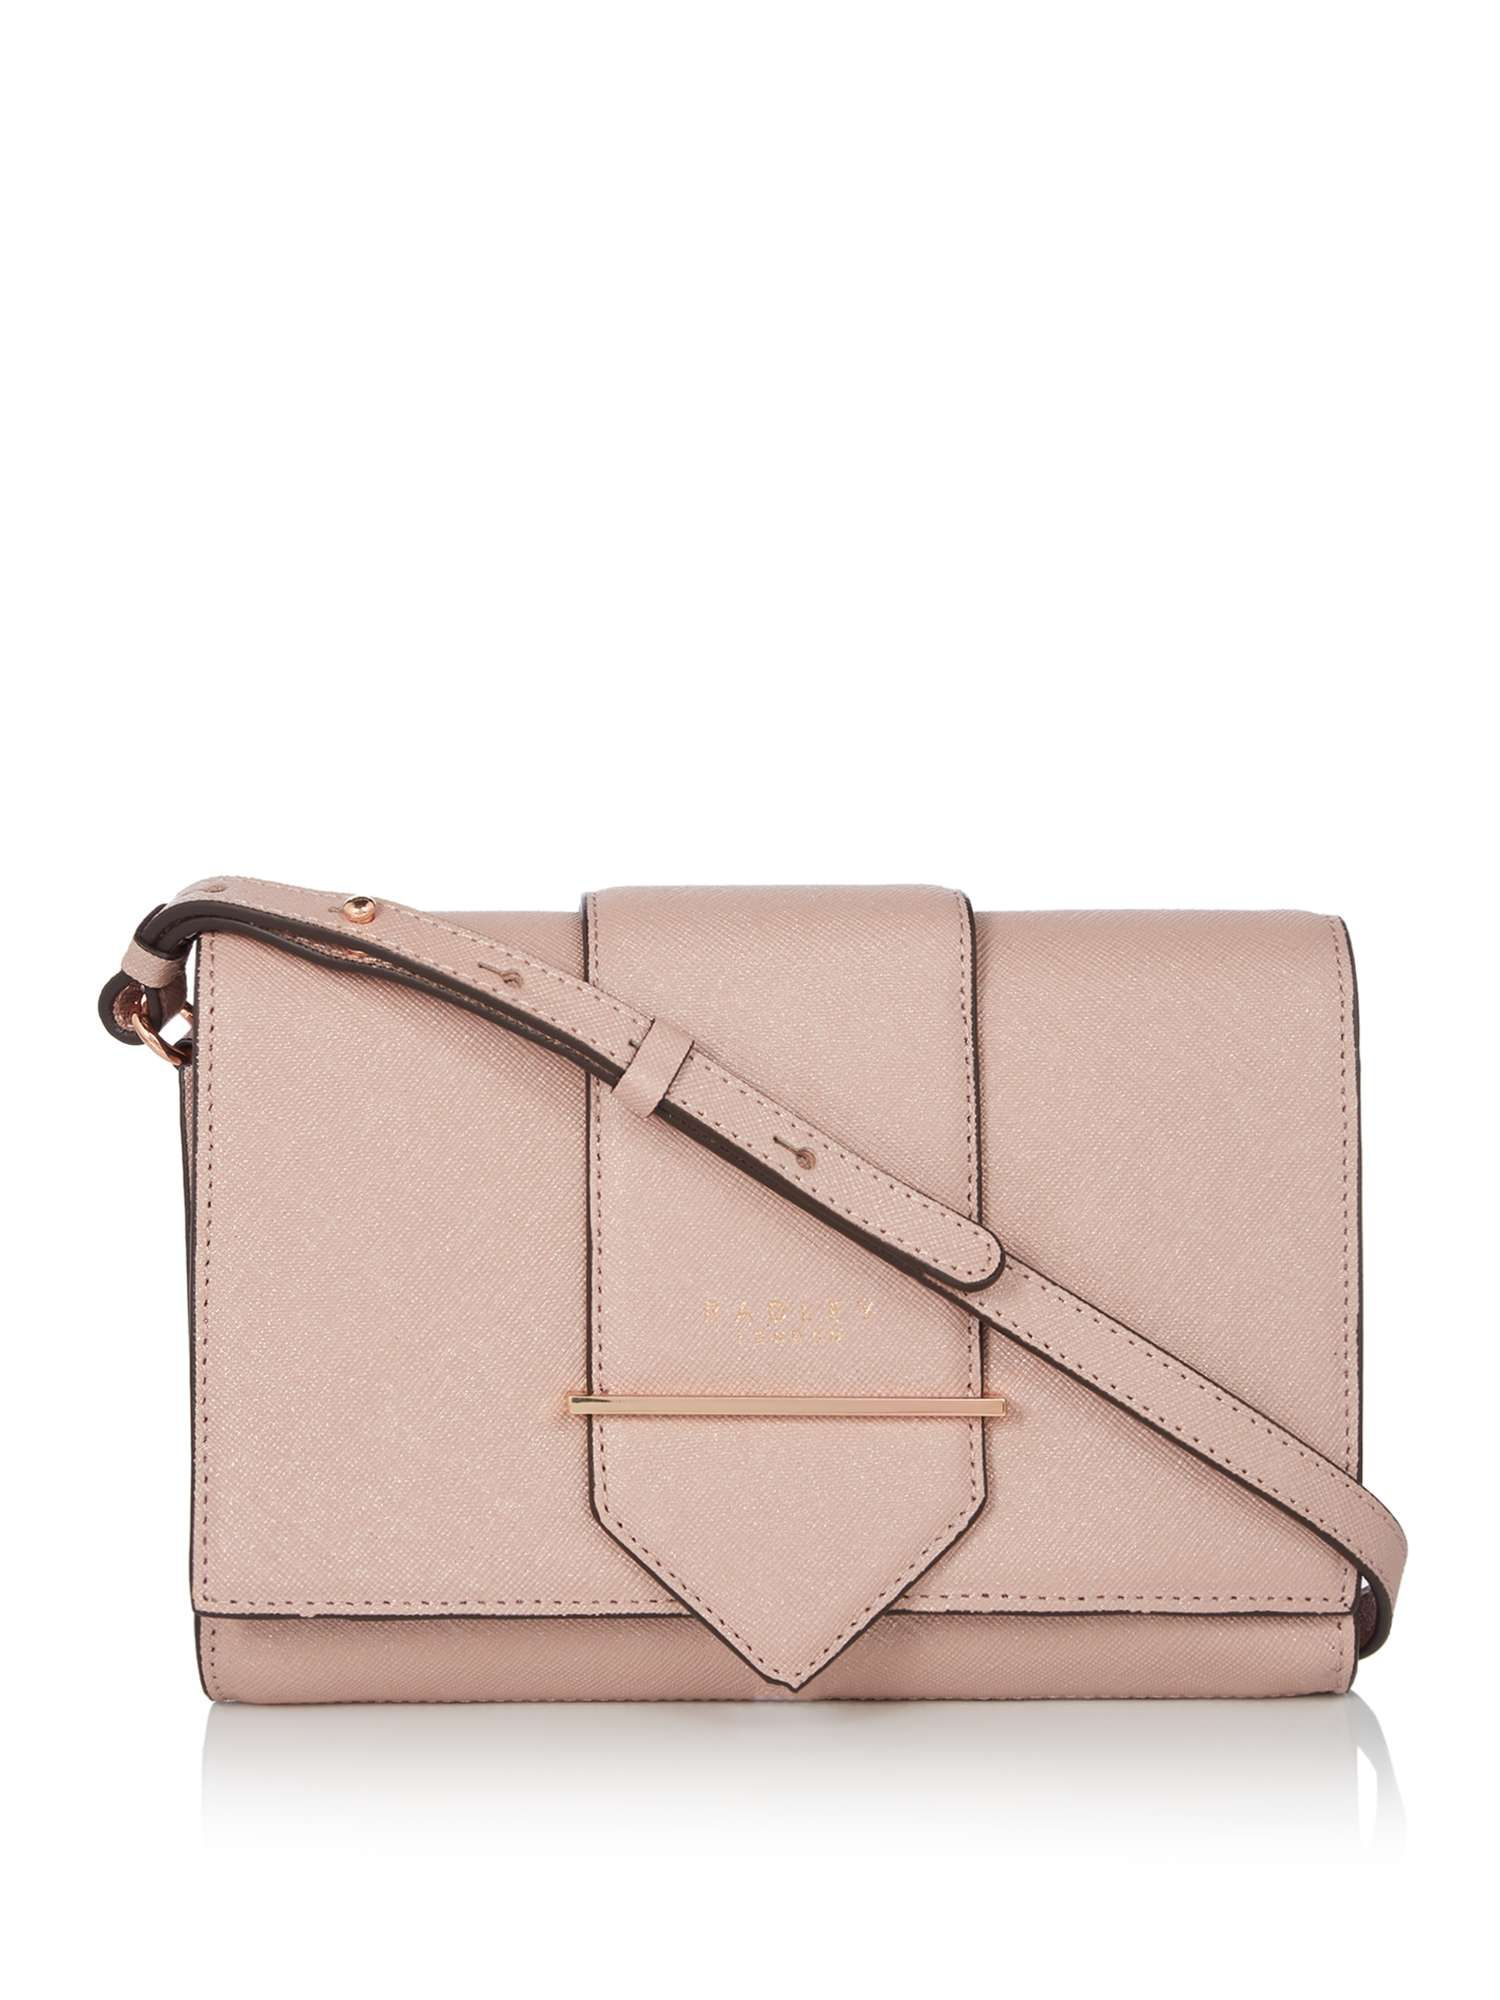 Your Radley Palace Street Small Flapover Crossbody Bag Online Now At House Of Fraser Why Not And Collect In